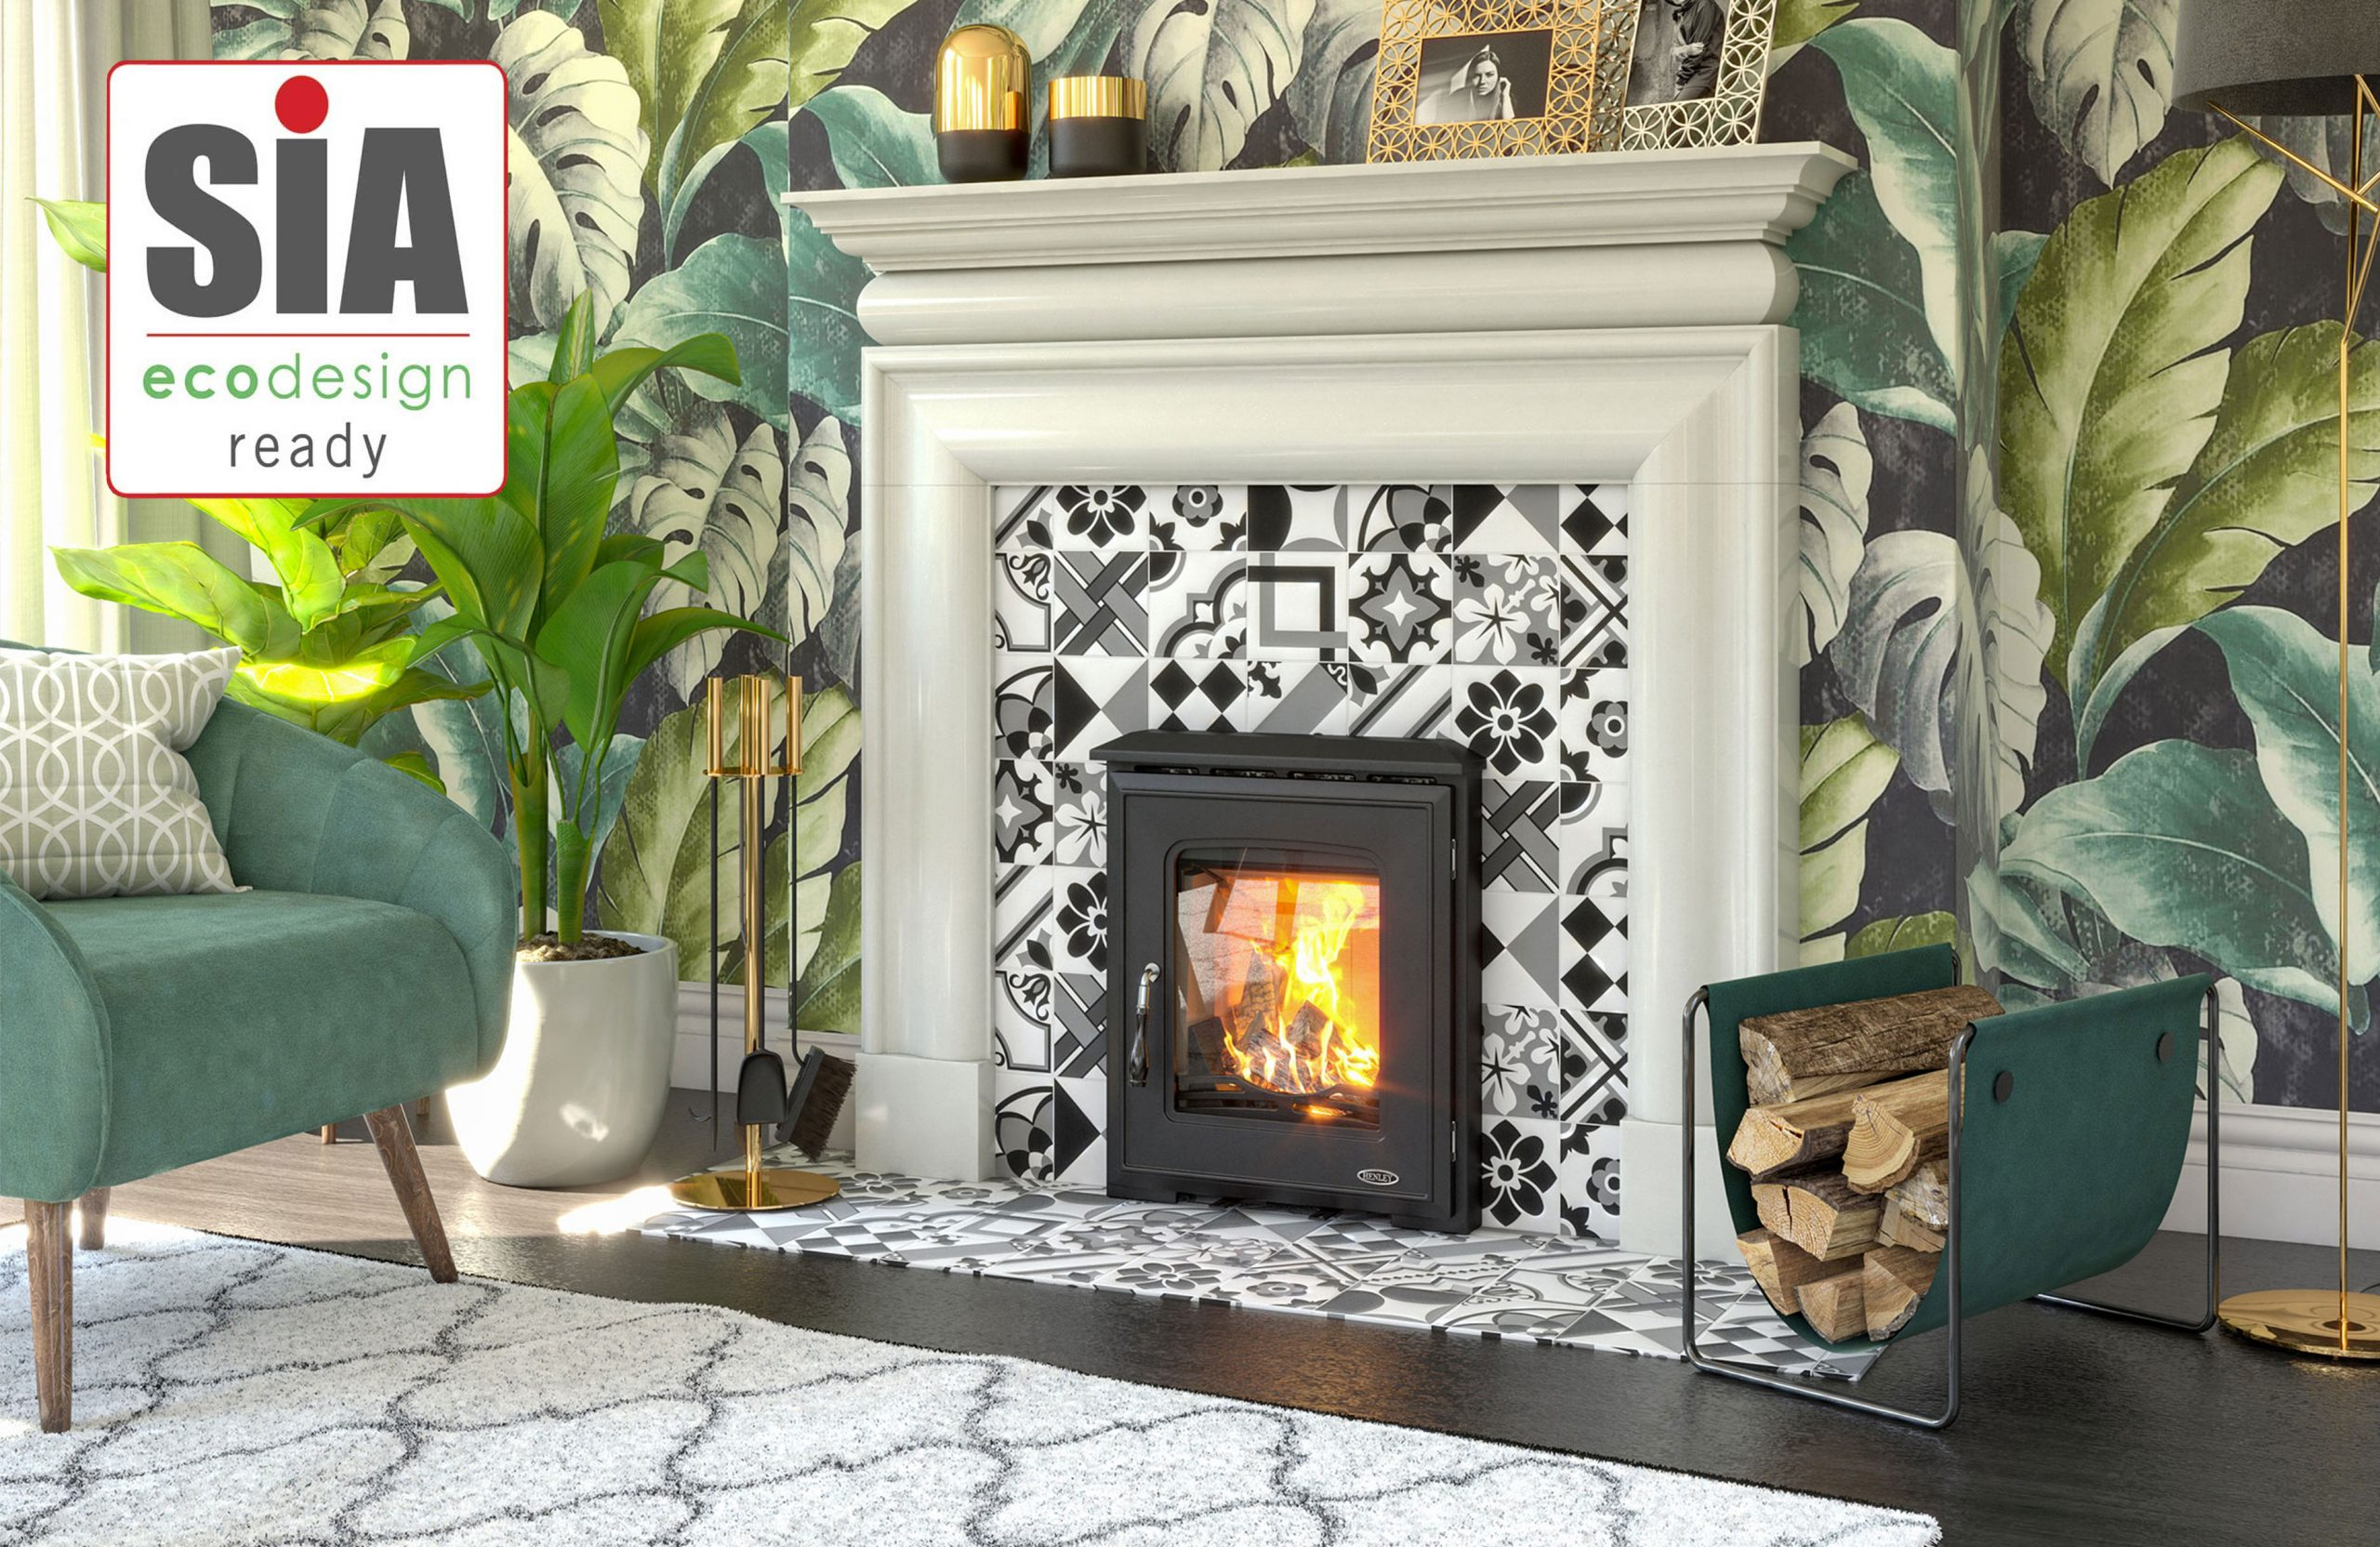 insert stove in fireplace with plants